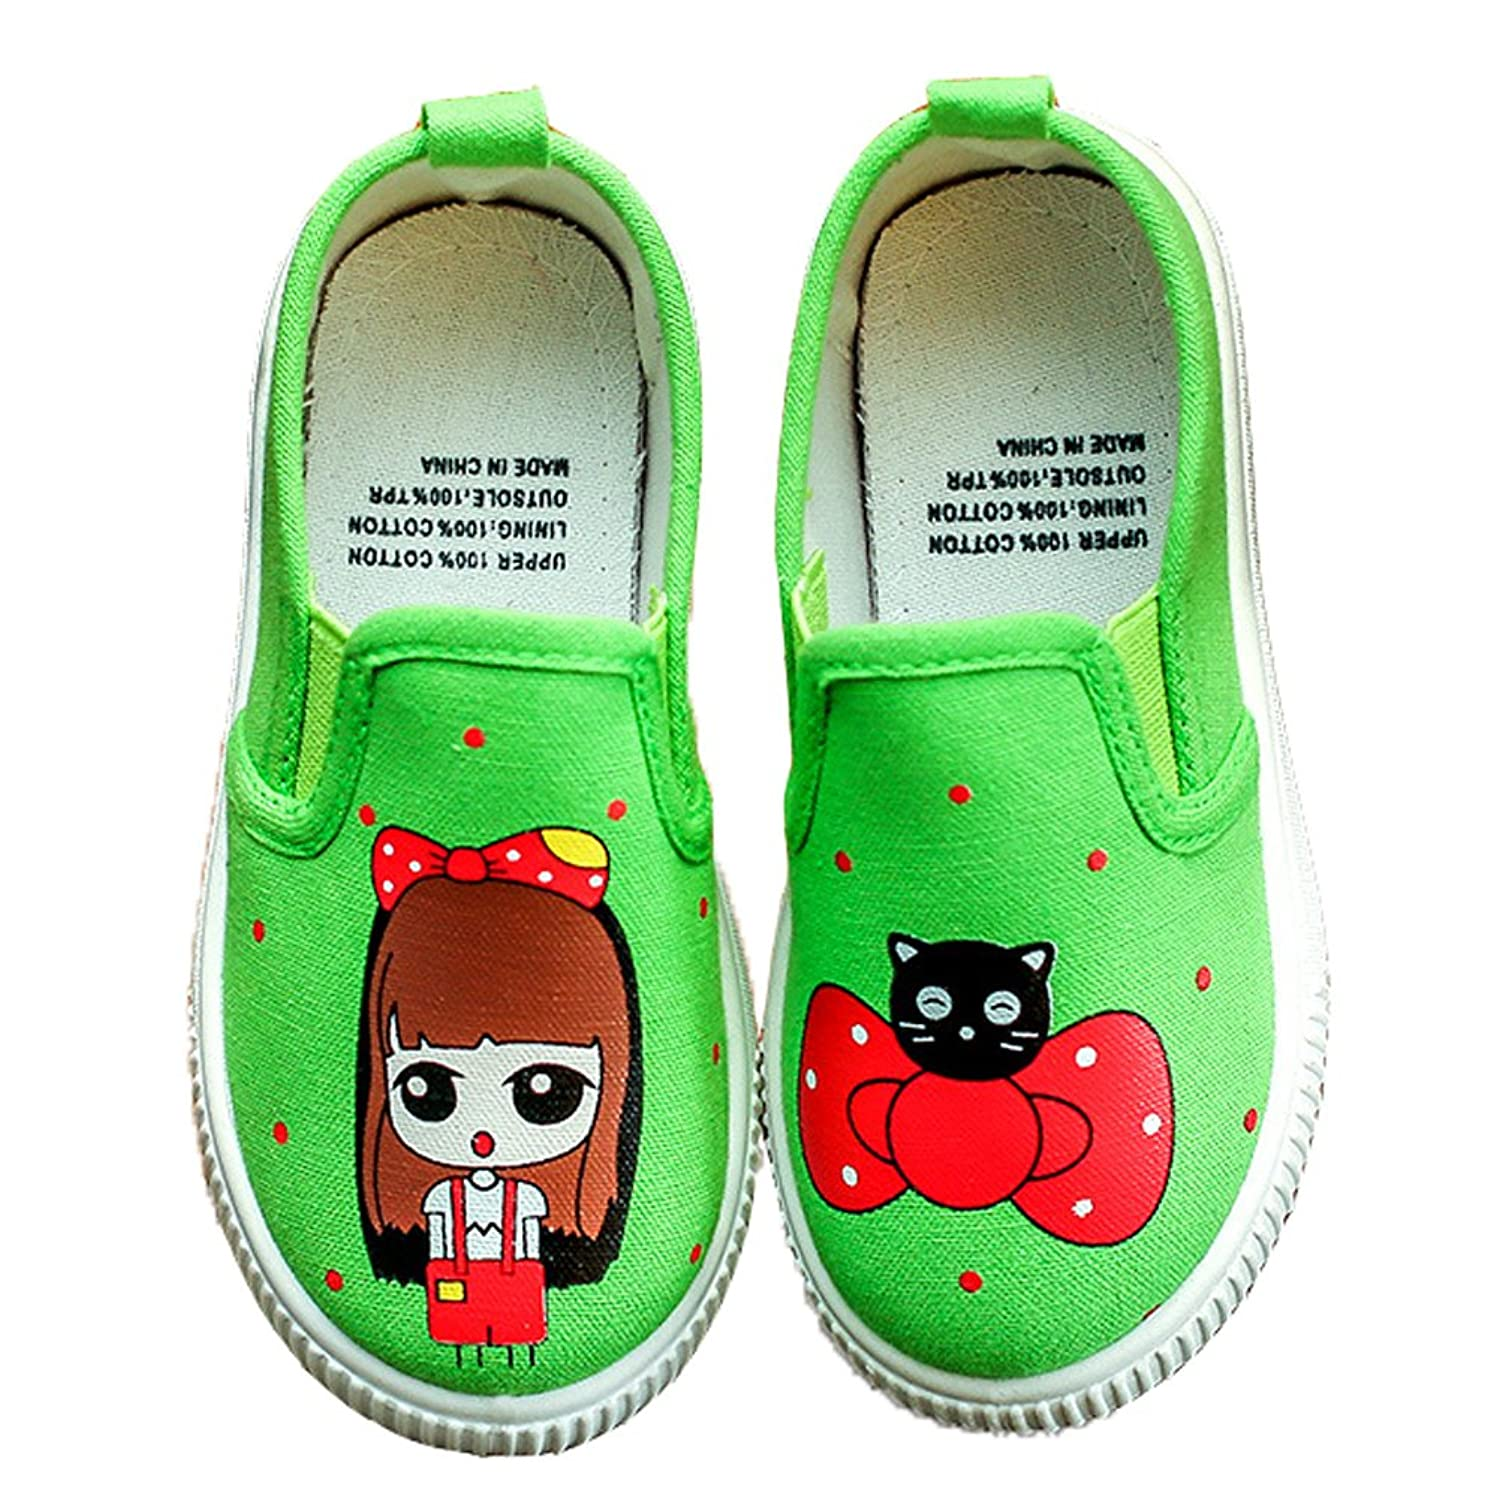 HiEase Girls Cute Cartoon Flats Loafers Slip On School Comfortable Canvas Shoes (Baby/Toddler/Little Kid)